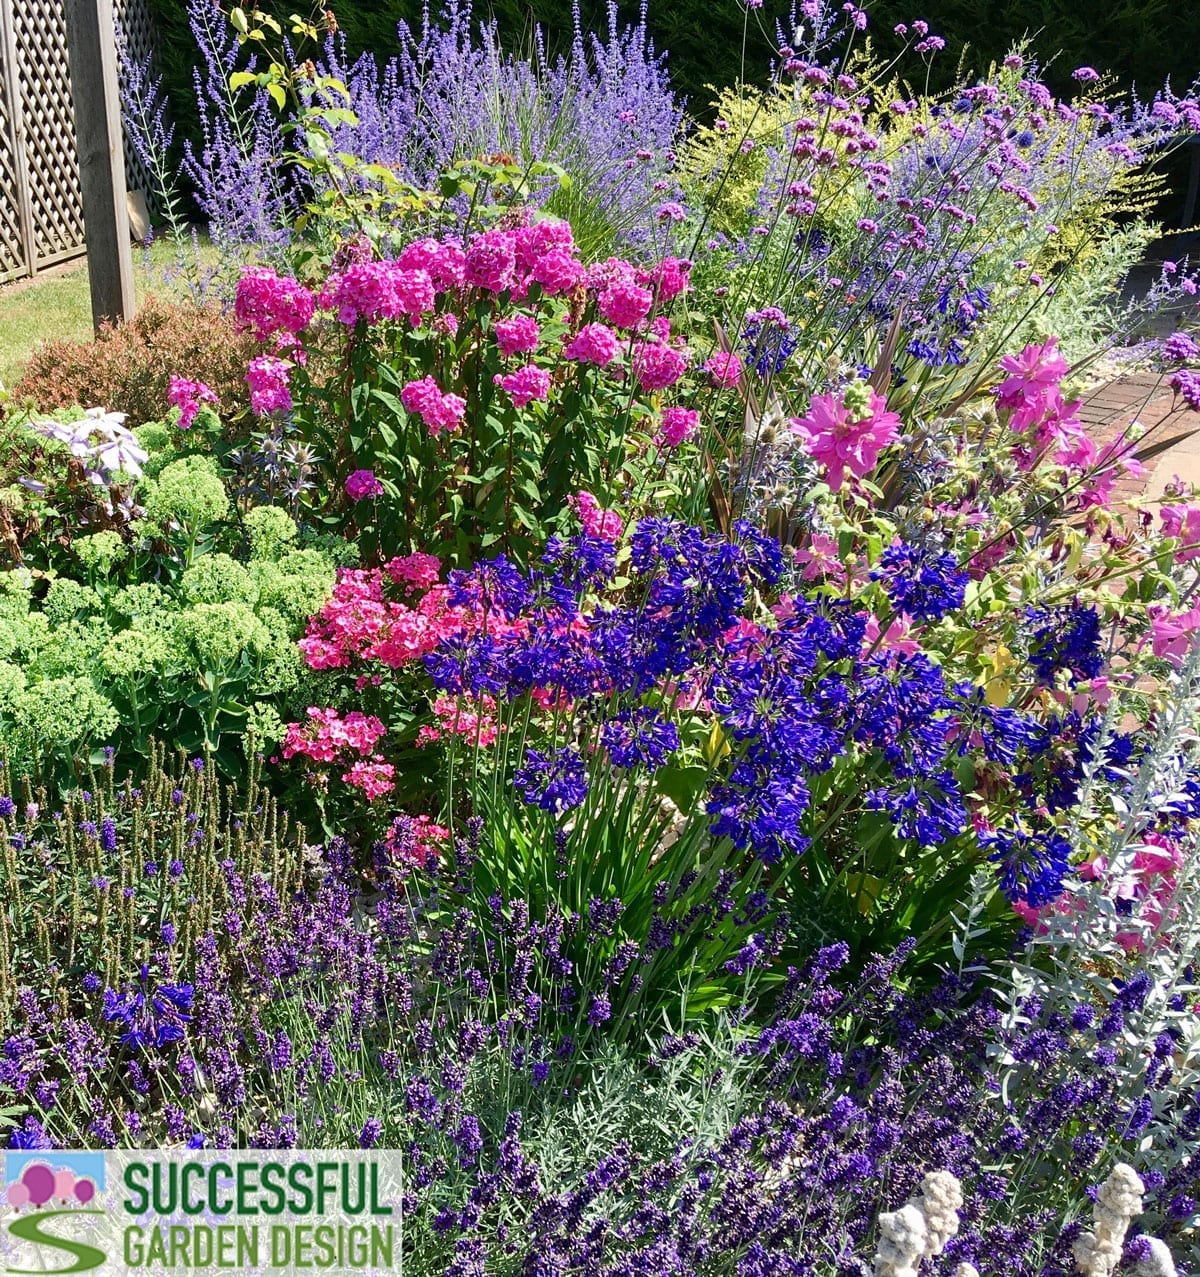 How to make your garden look spectacular this summer!